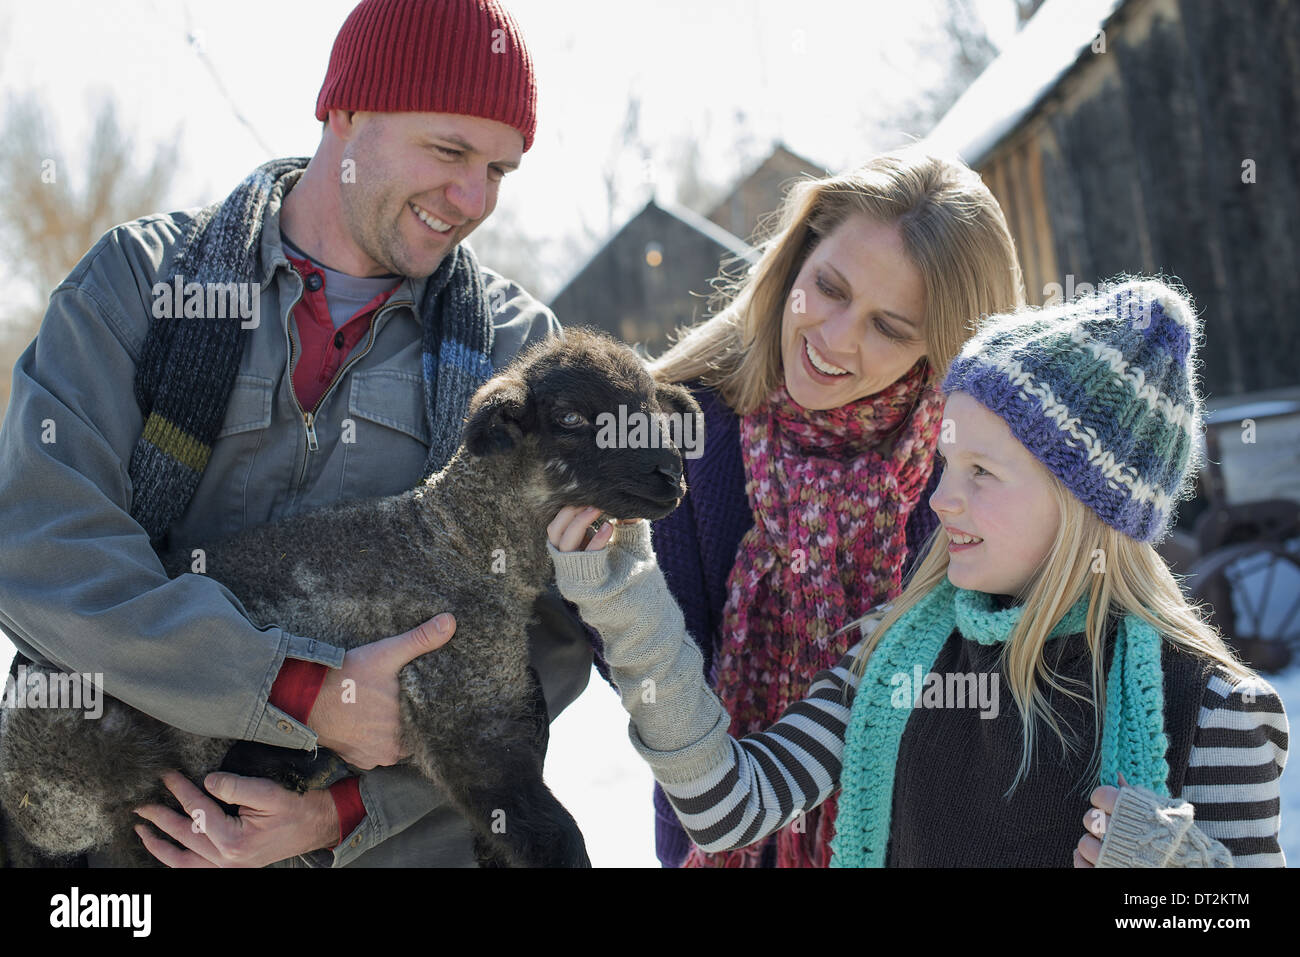 Winter scenery with snow on the ground A man holding a young lamb and a child stroking its chin - Stock Image